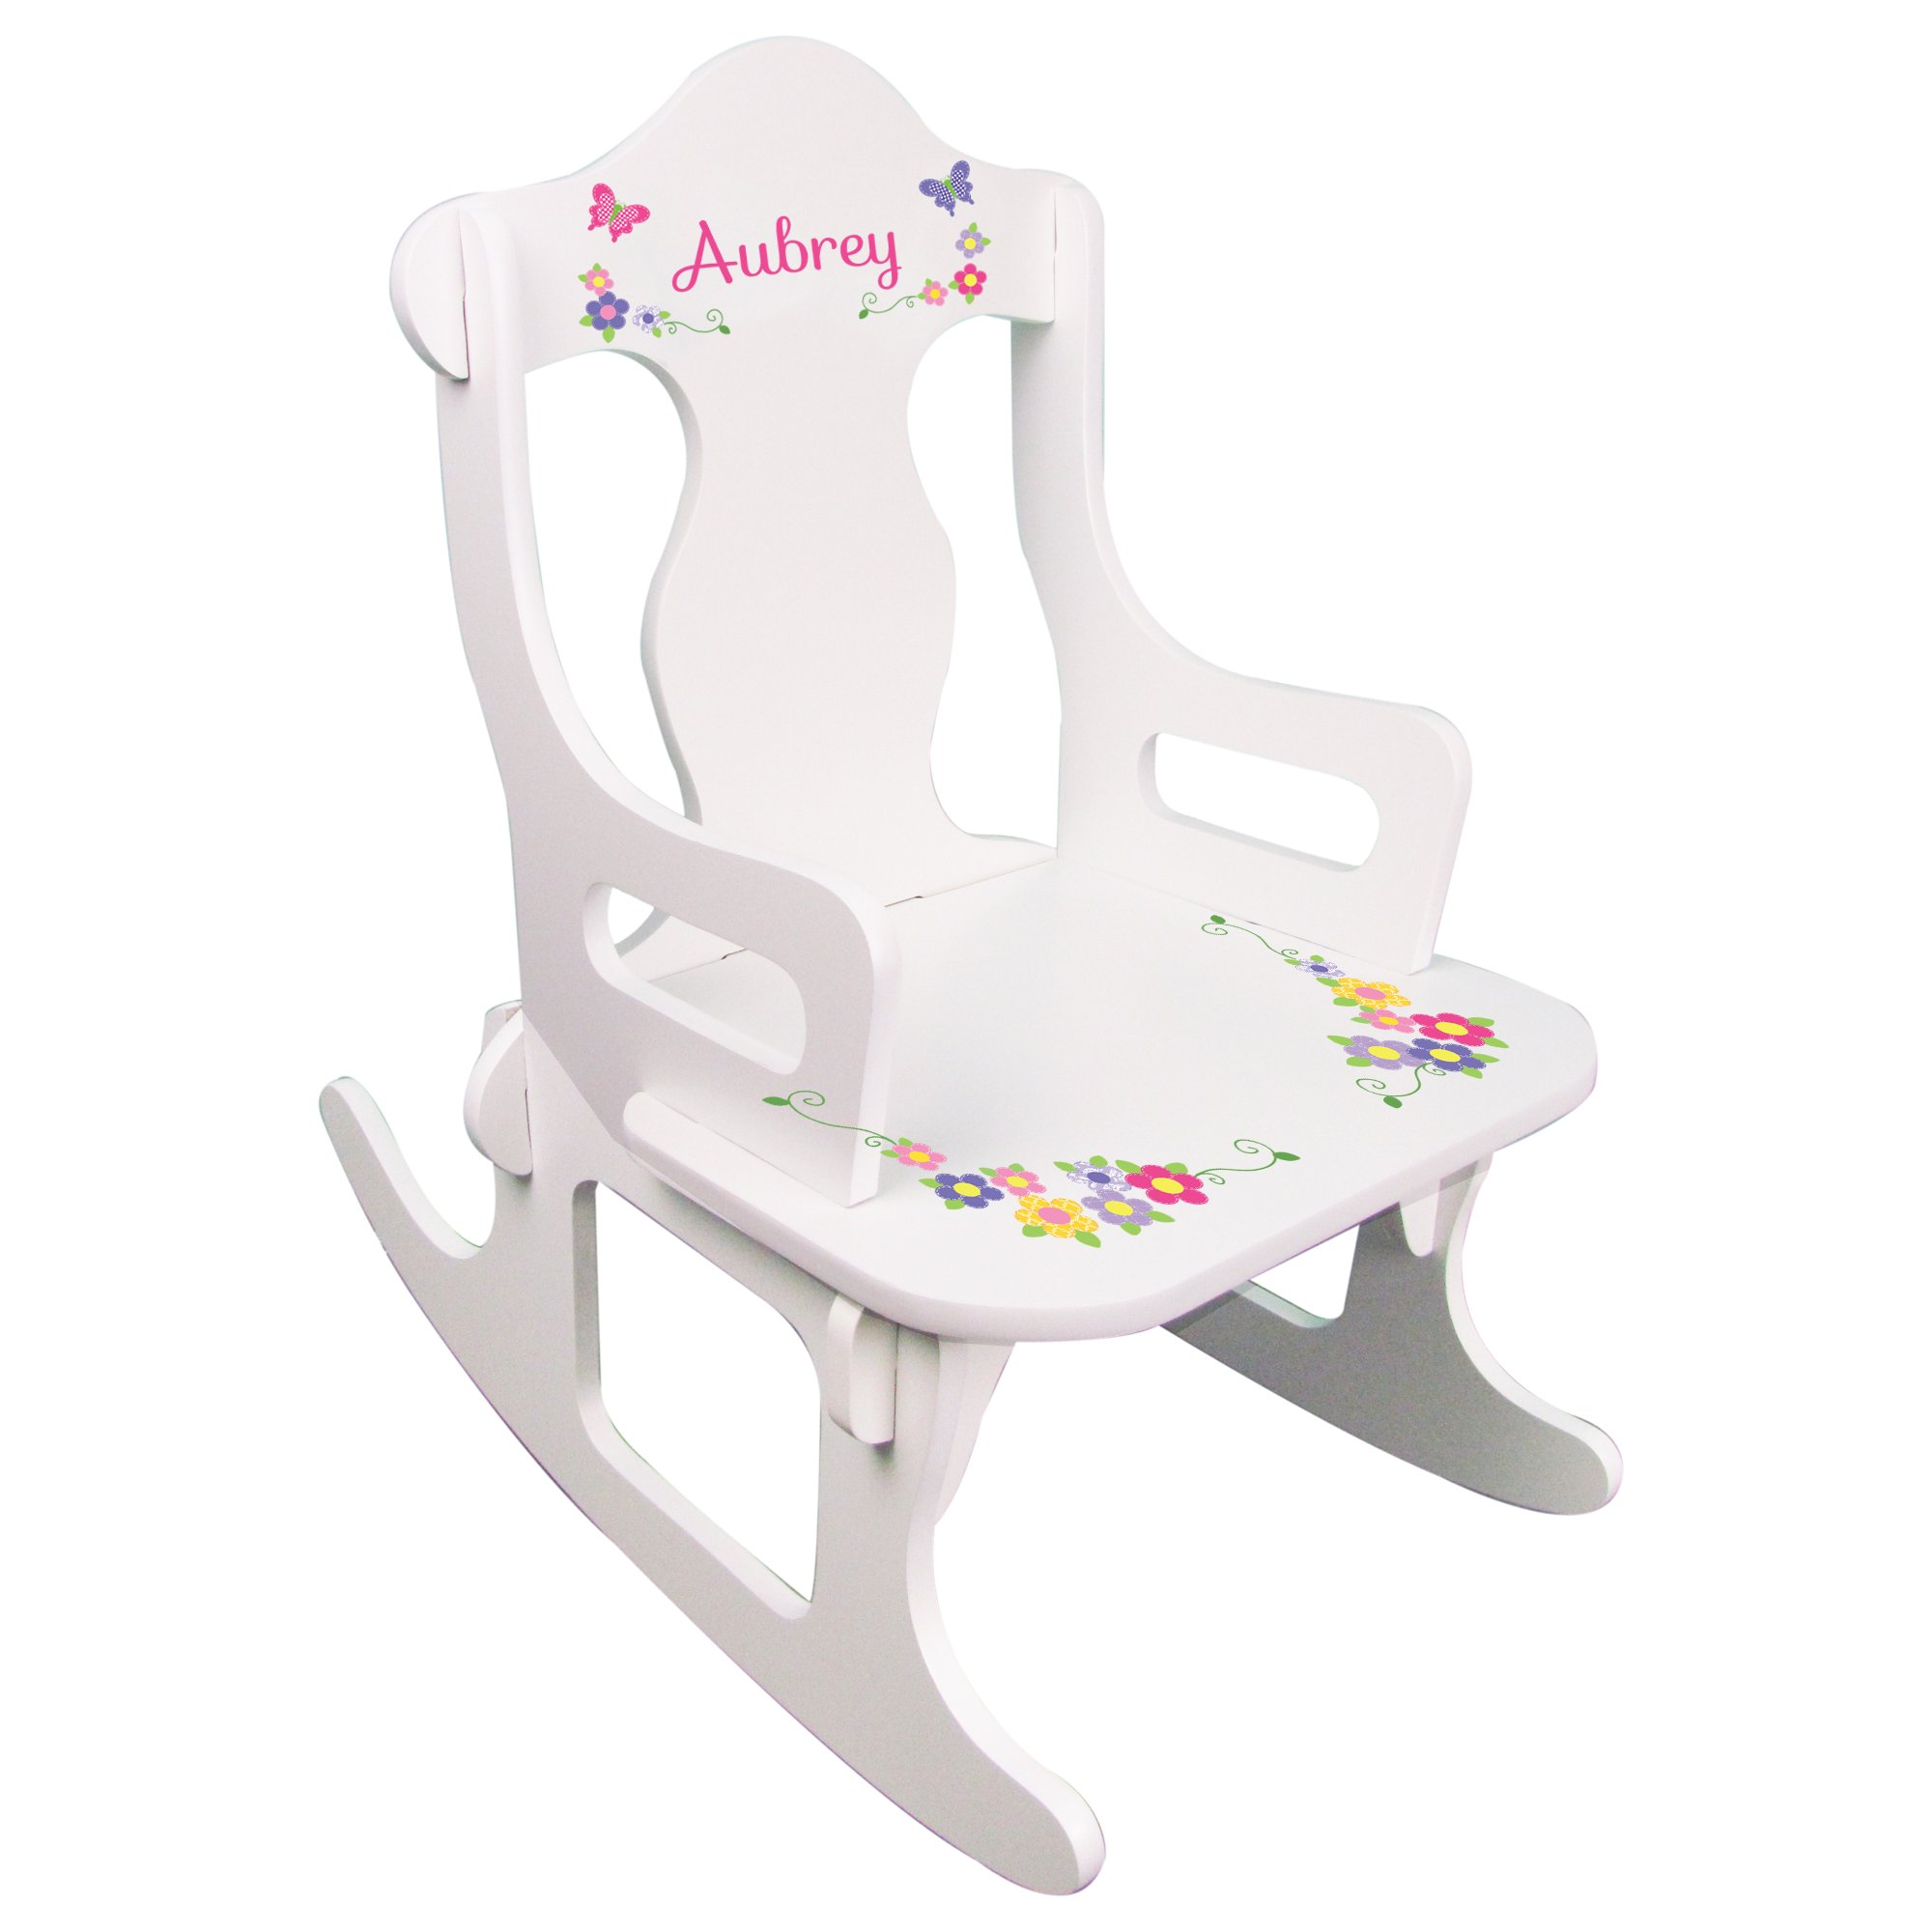 Personalized Child's Butterrfly Puzzle Rocking Chair